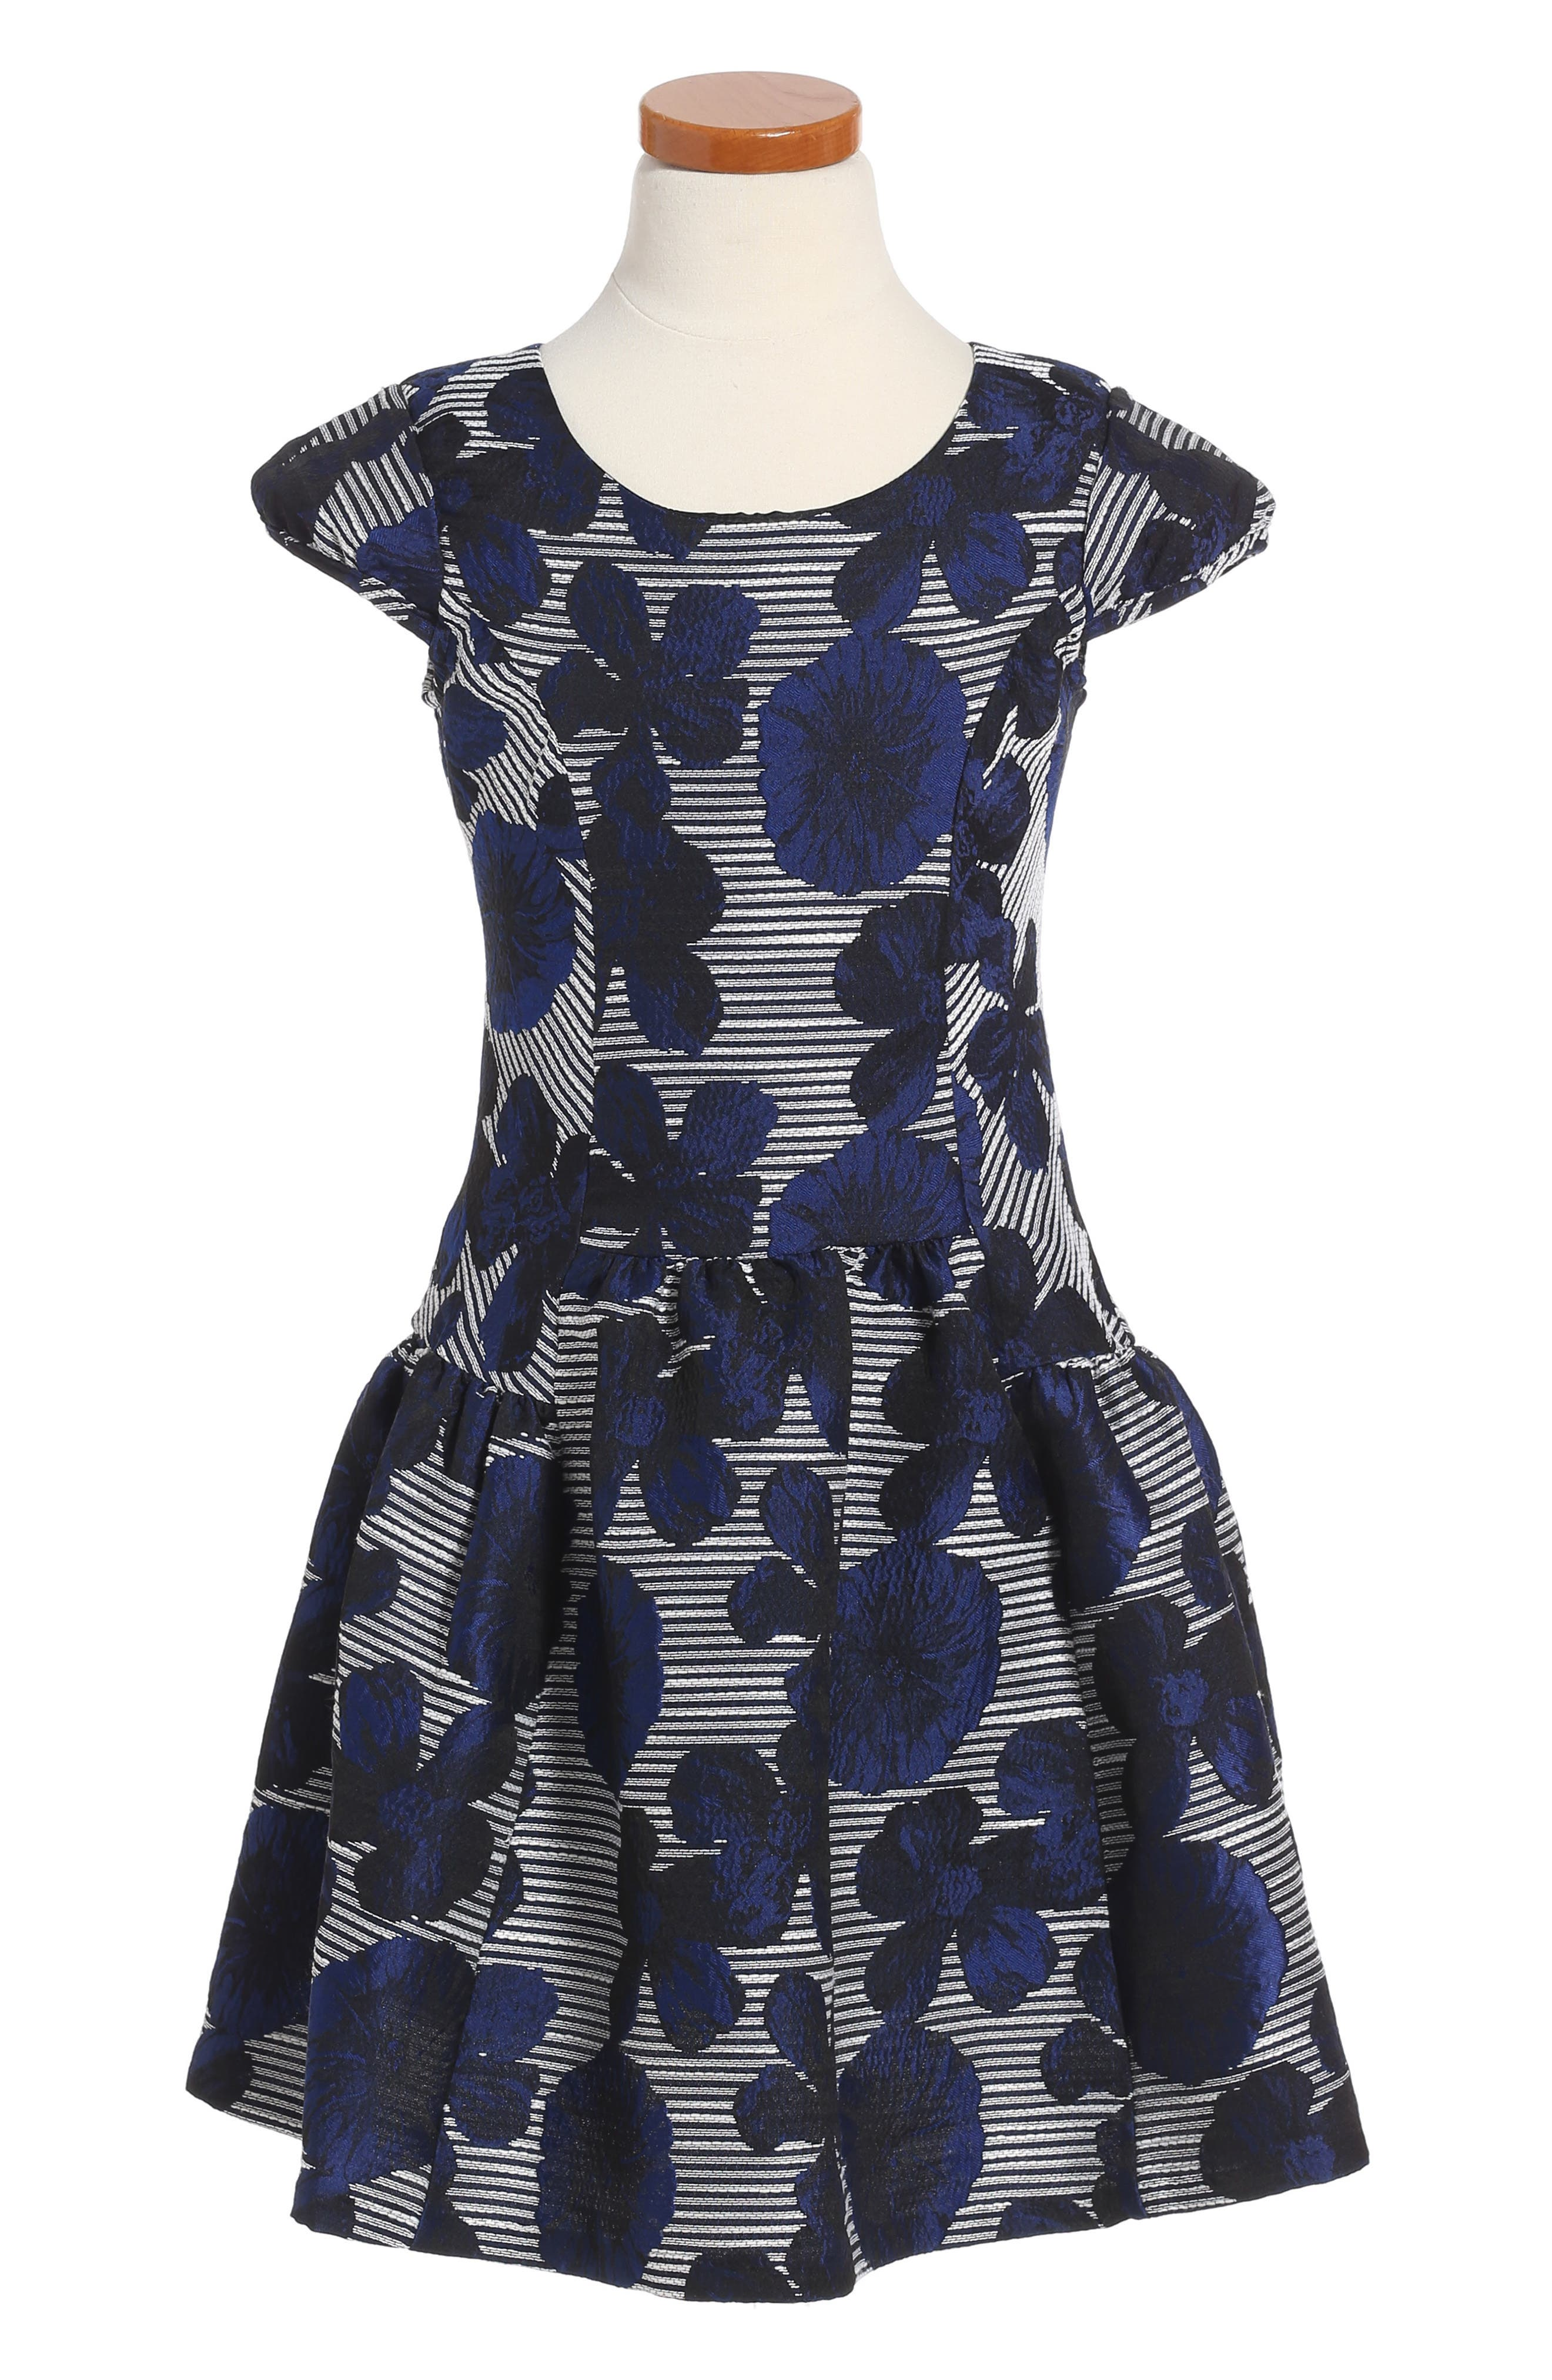 Floral Jacquard Dress,                             Main thumbnail 1, color,                             400